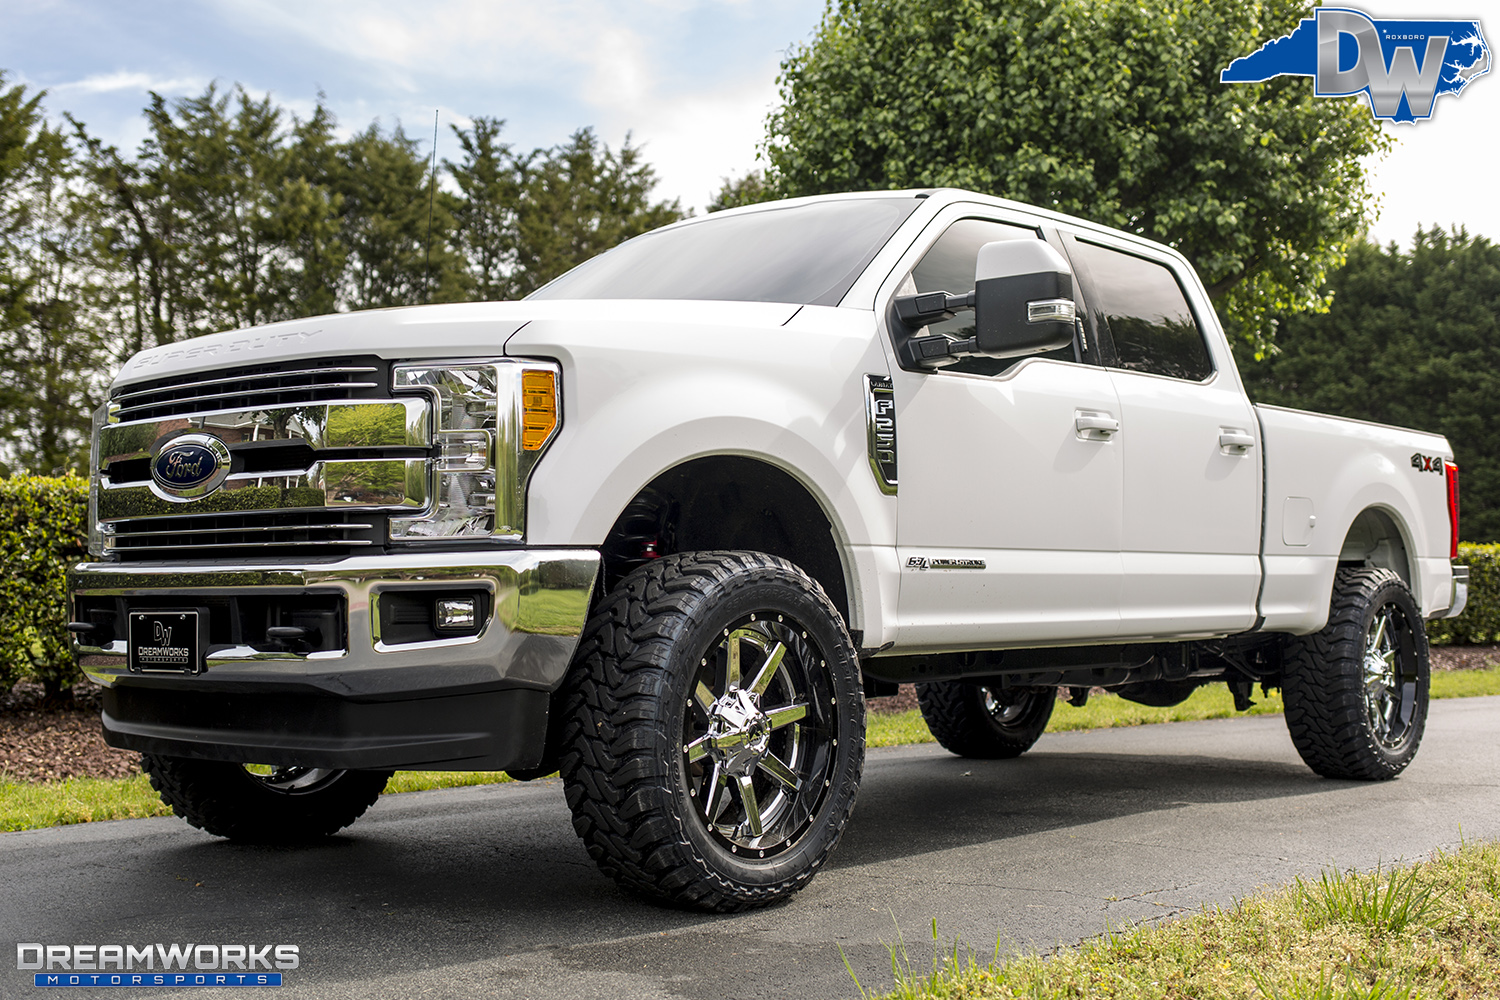 White-Ford-F250-Super-Duty-Dreamworks-Motorsports-2.jpg